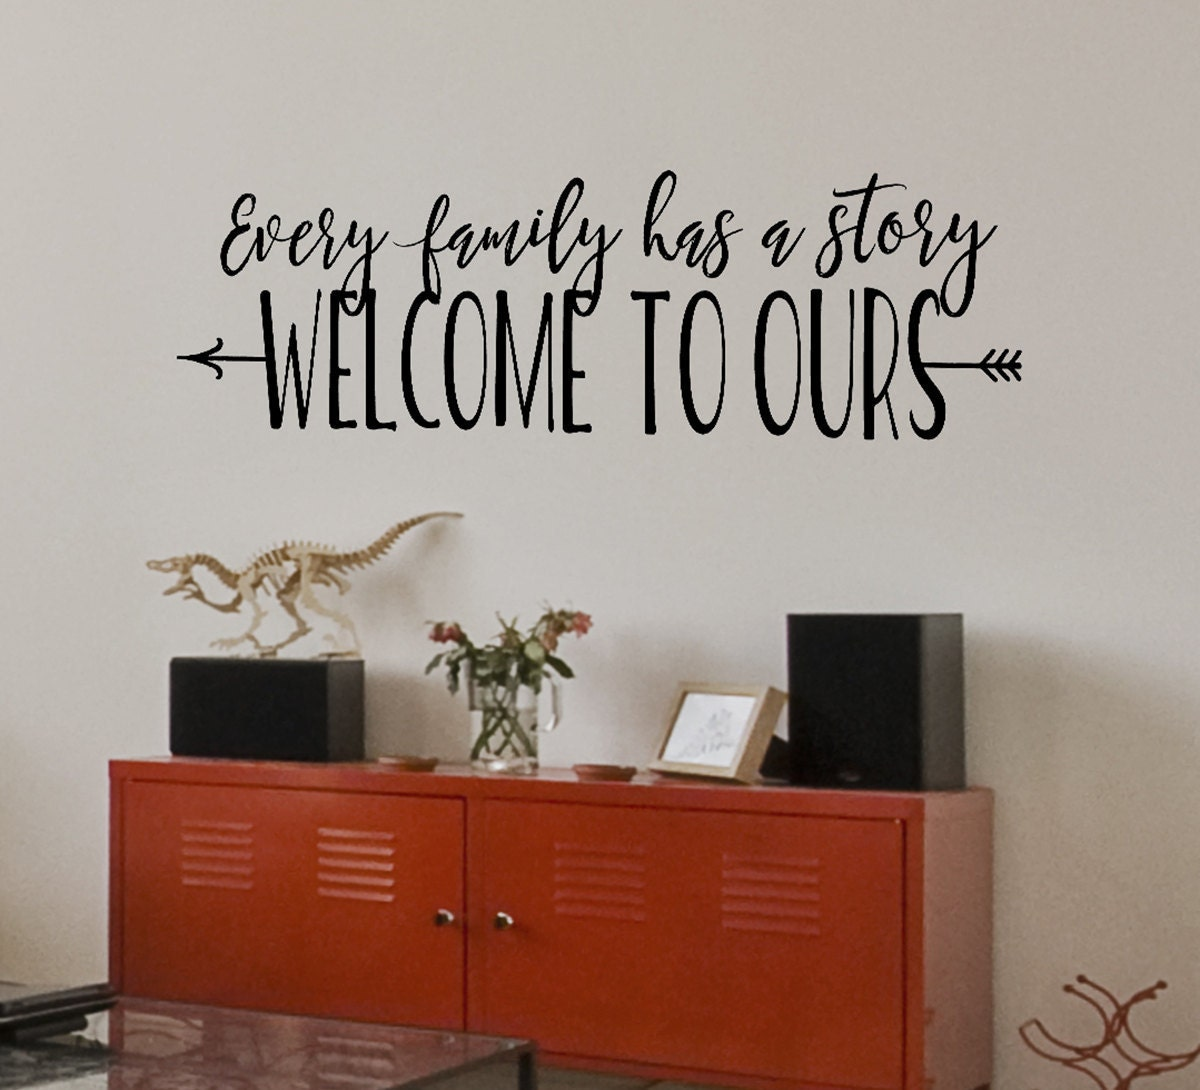 Every family has a story welcome to ours family wall decal for Living room quote decals